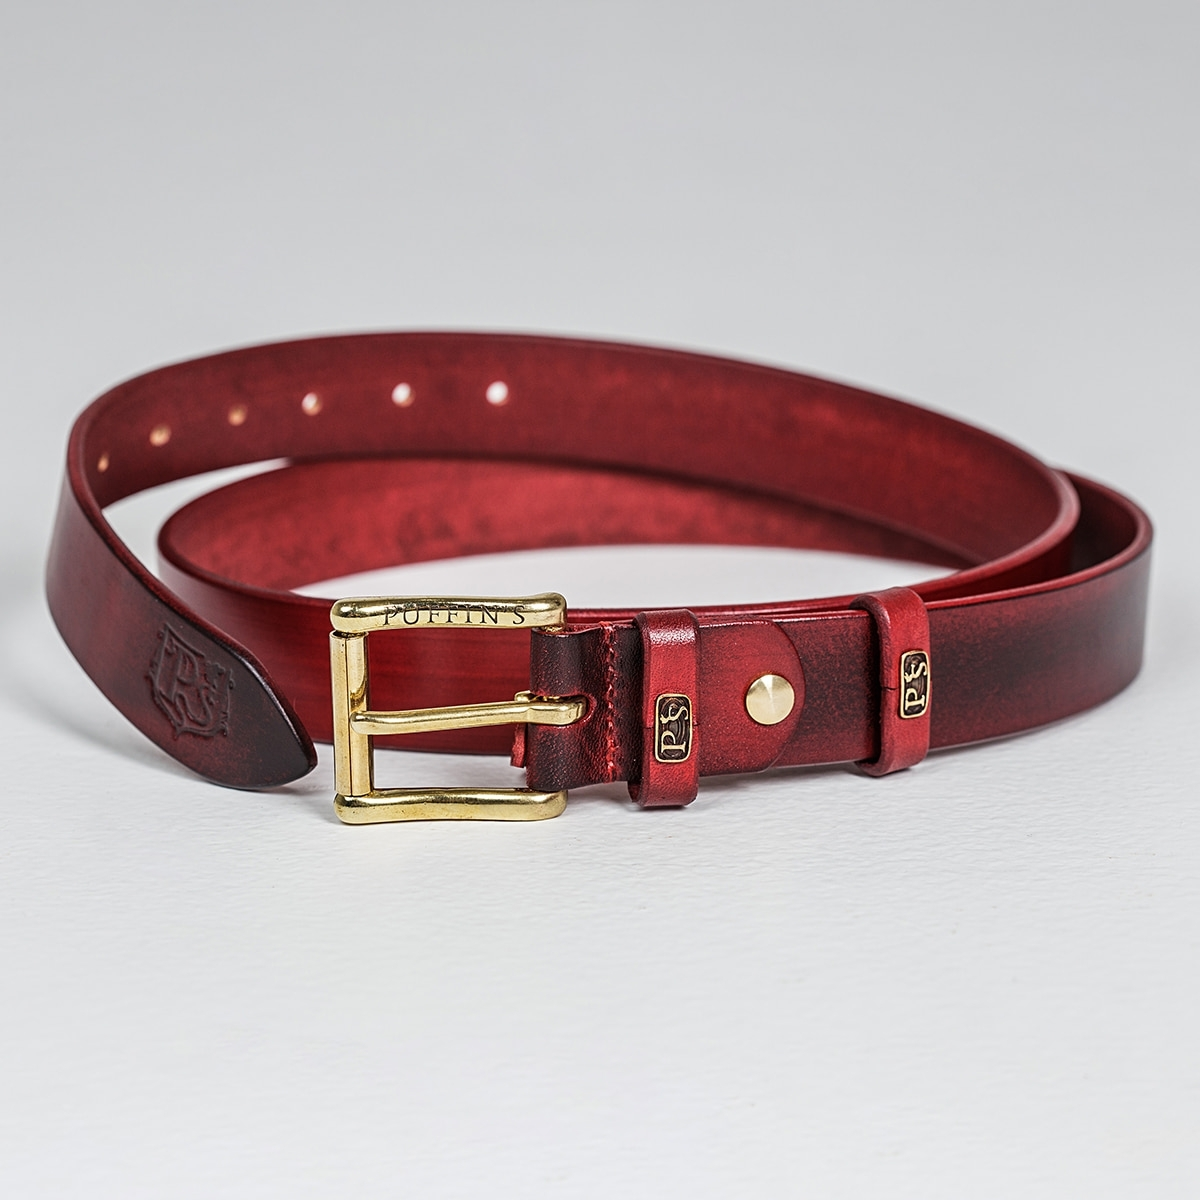 32mm traditional belt with brass buckle red currant